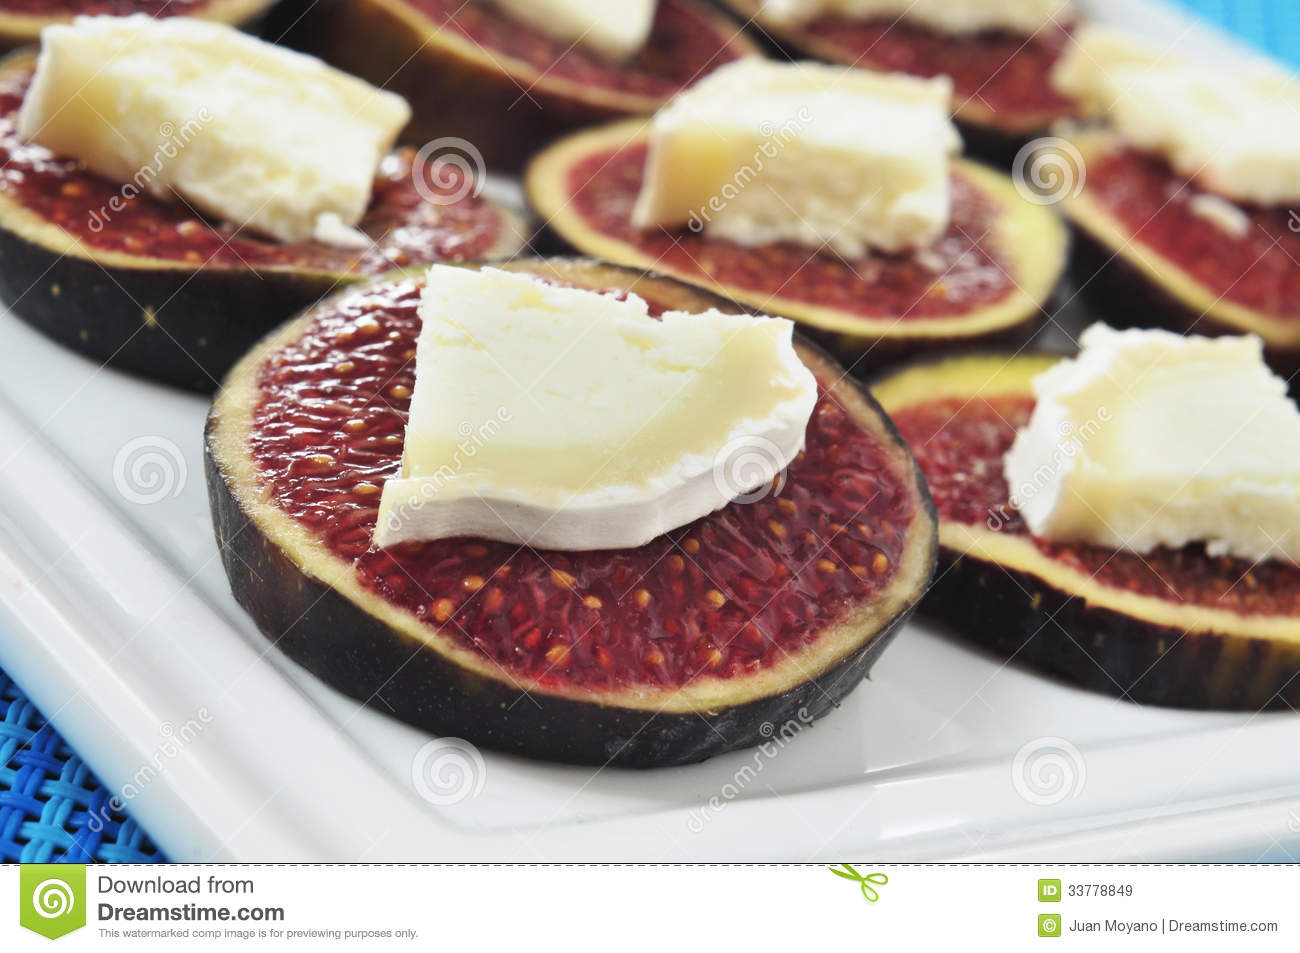 Figs And Cheese Royalty Free Stock Images - Image: 33778849